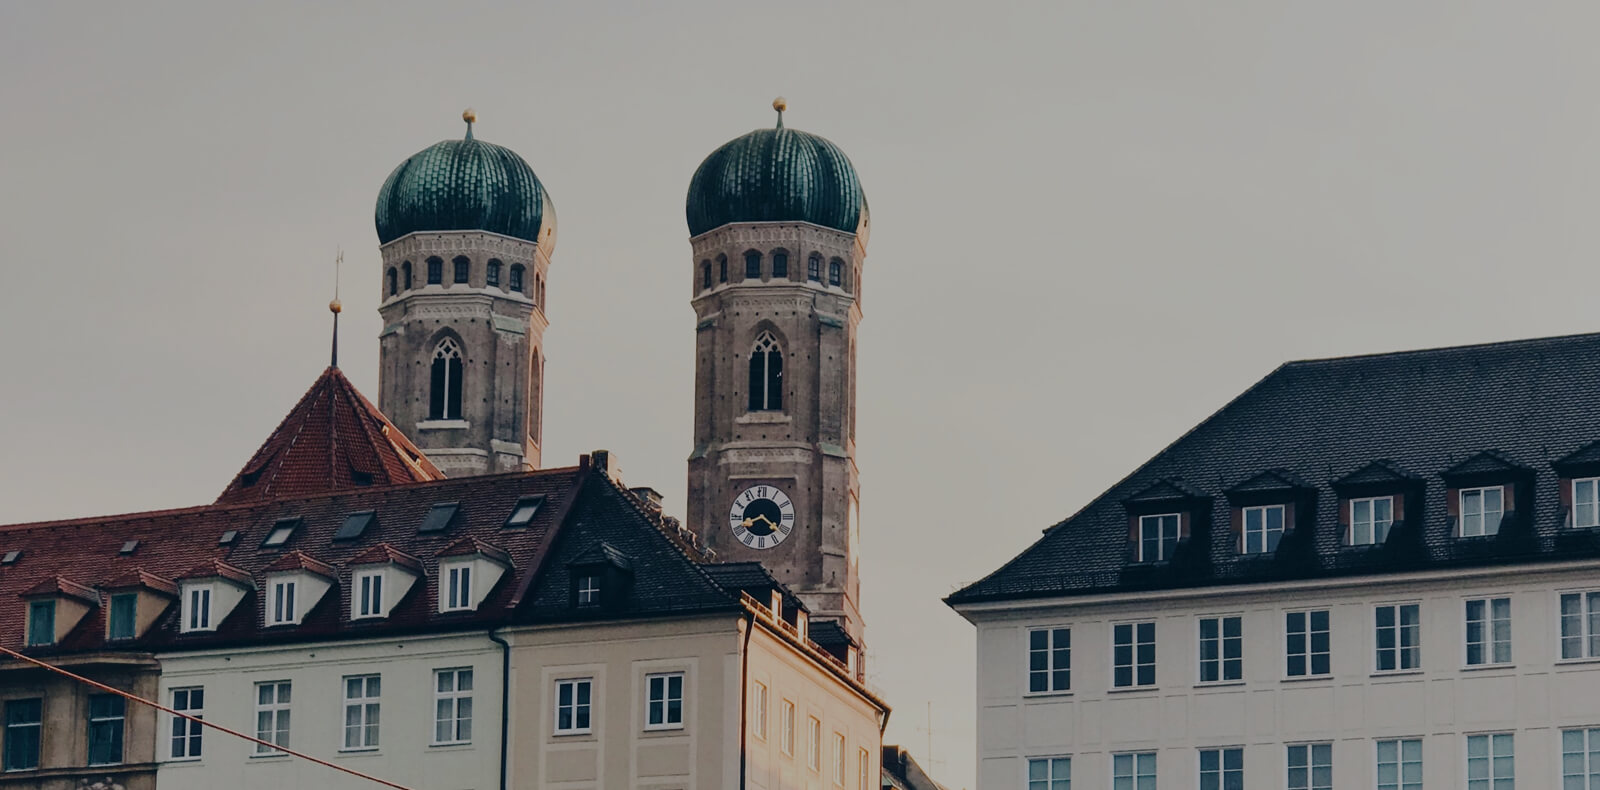 The two towers of the church Frauenkirche in Munich